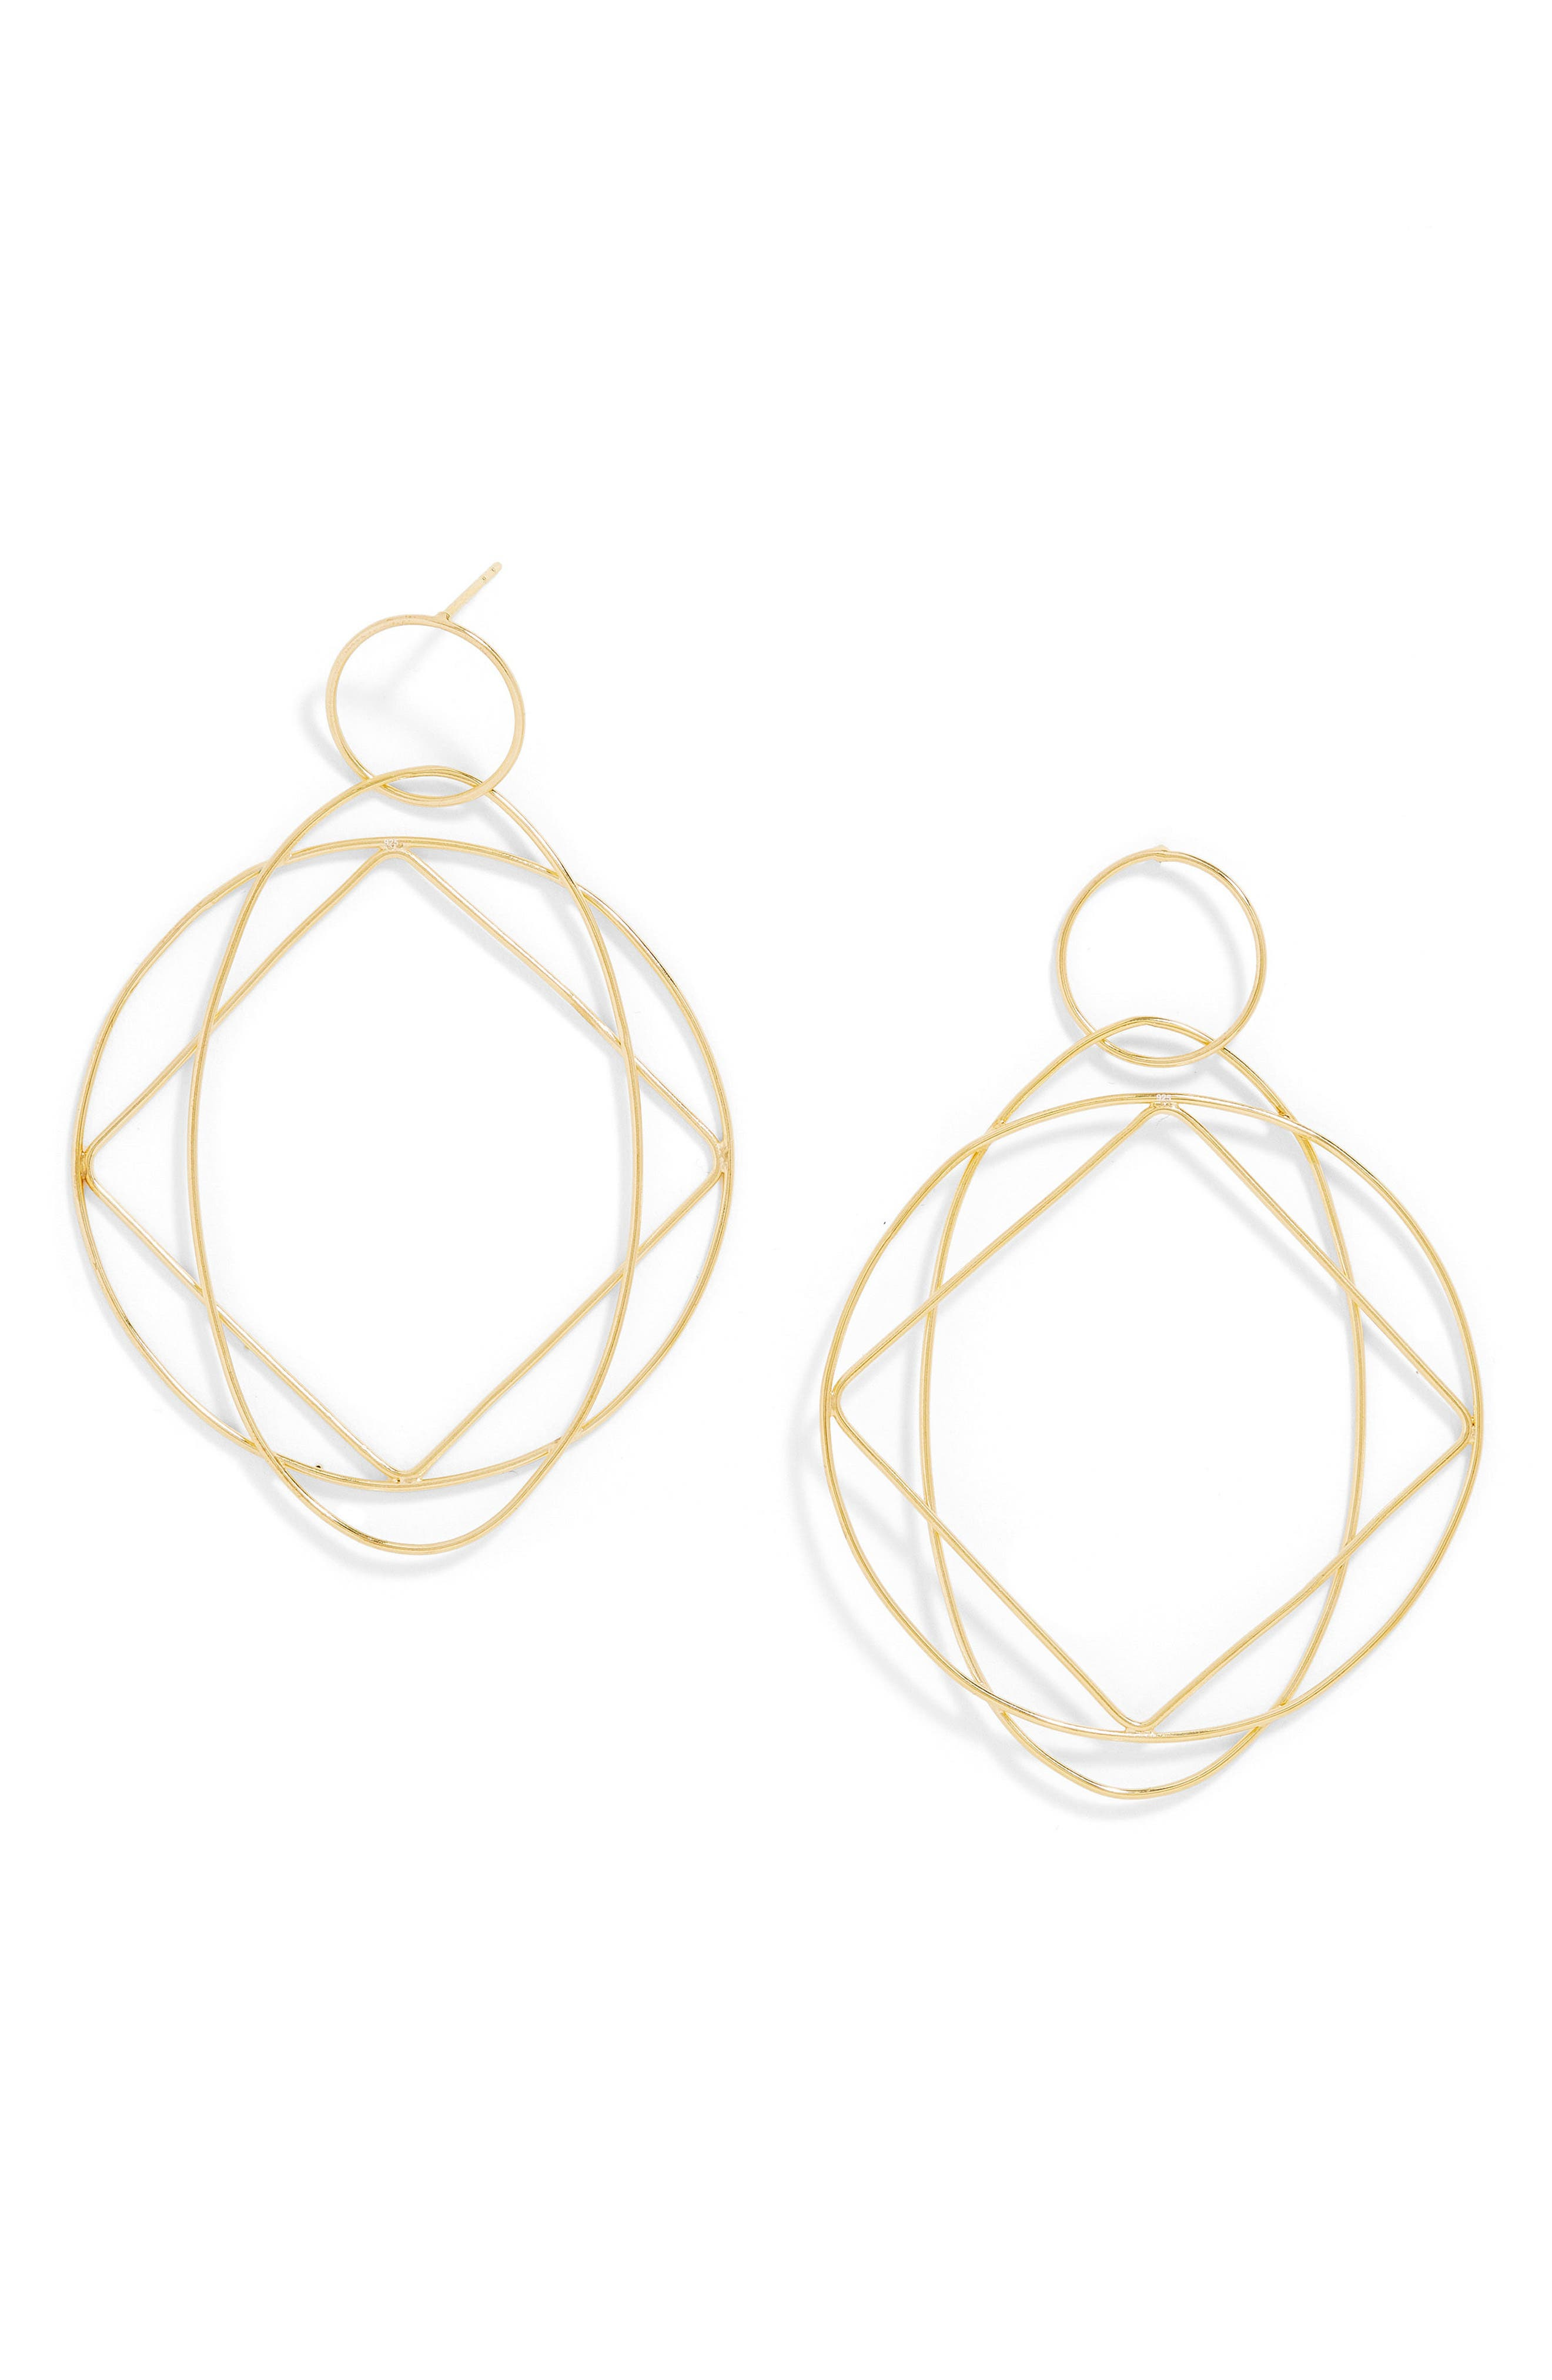 Quad Everyday Spinning Hoop Earrings,                             Main thumbnail 1, color,                             Gold